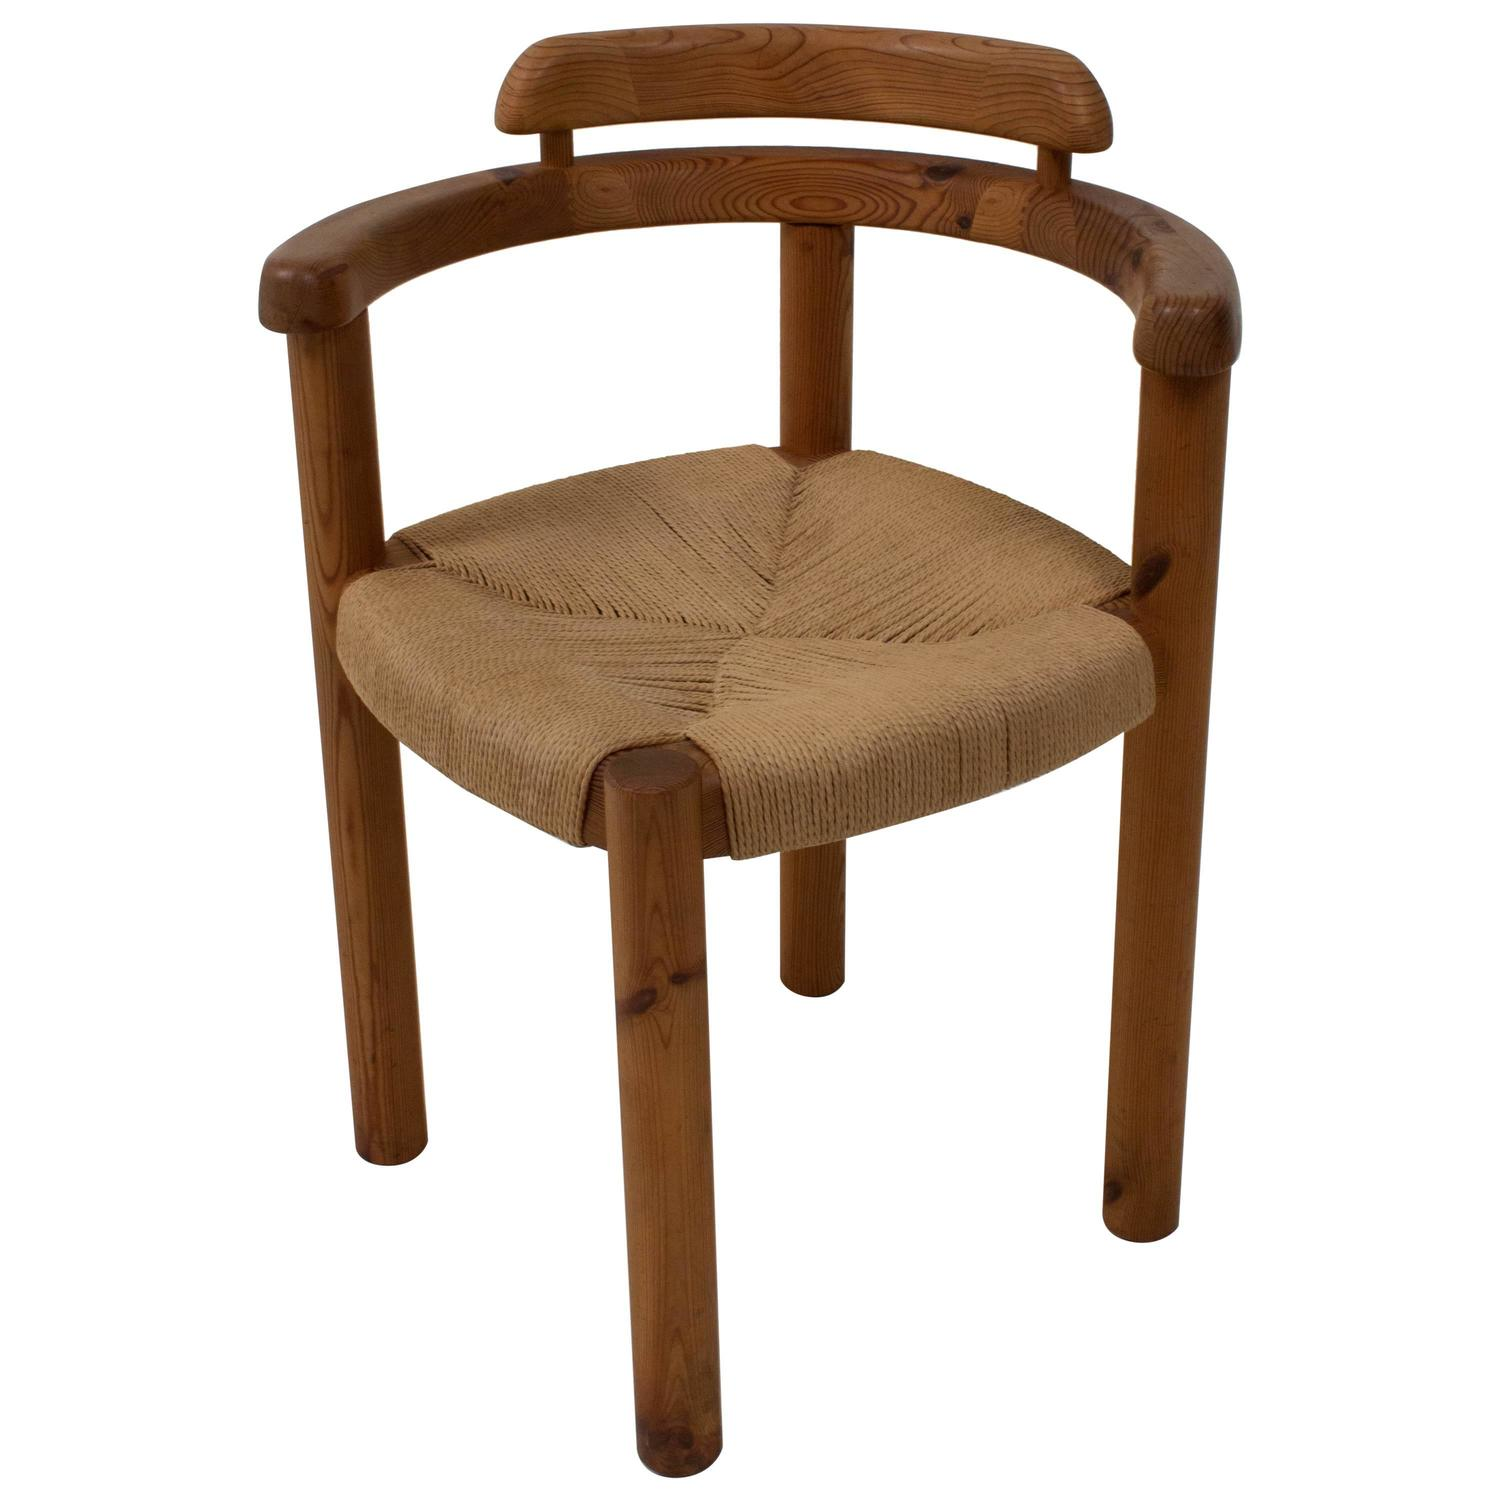 Charmant Stylish Mid Century Modern Corner Chair In The Style Of Rainer Daumiller,  1970s At 1stdibs